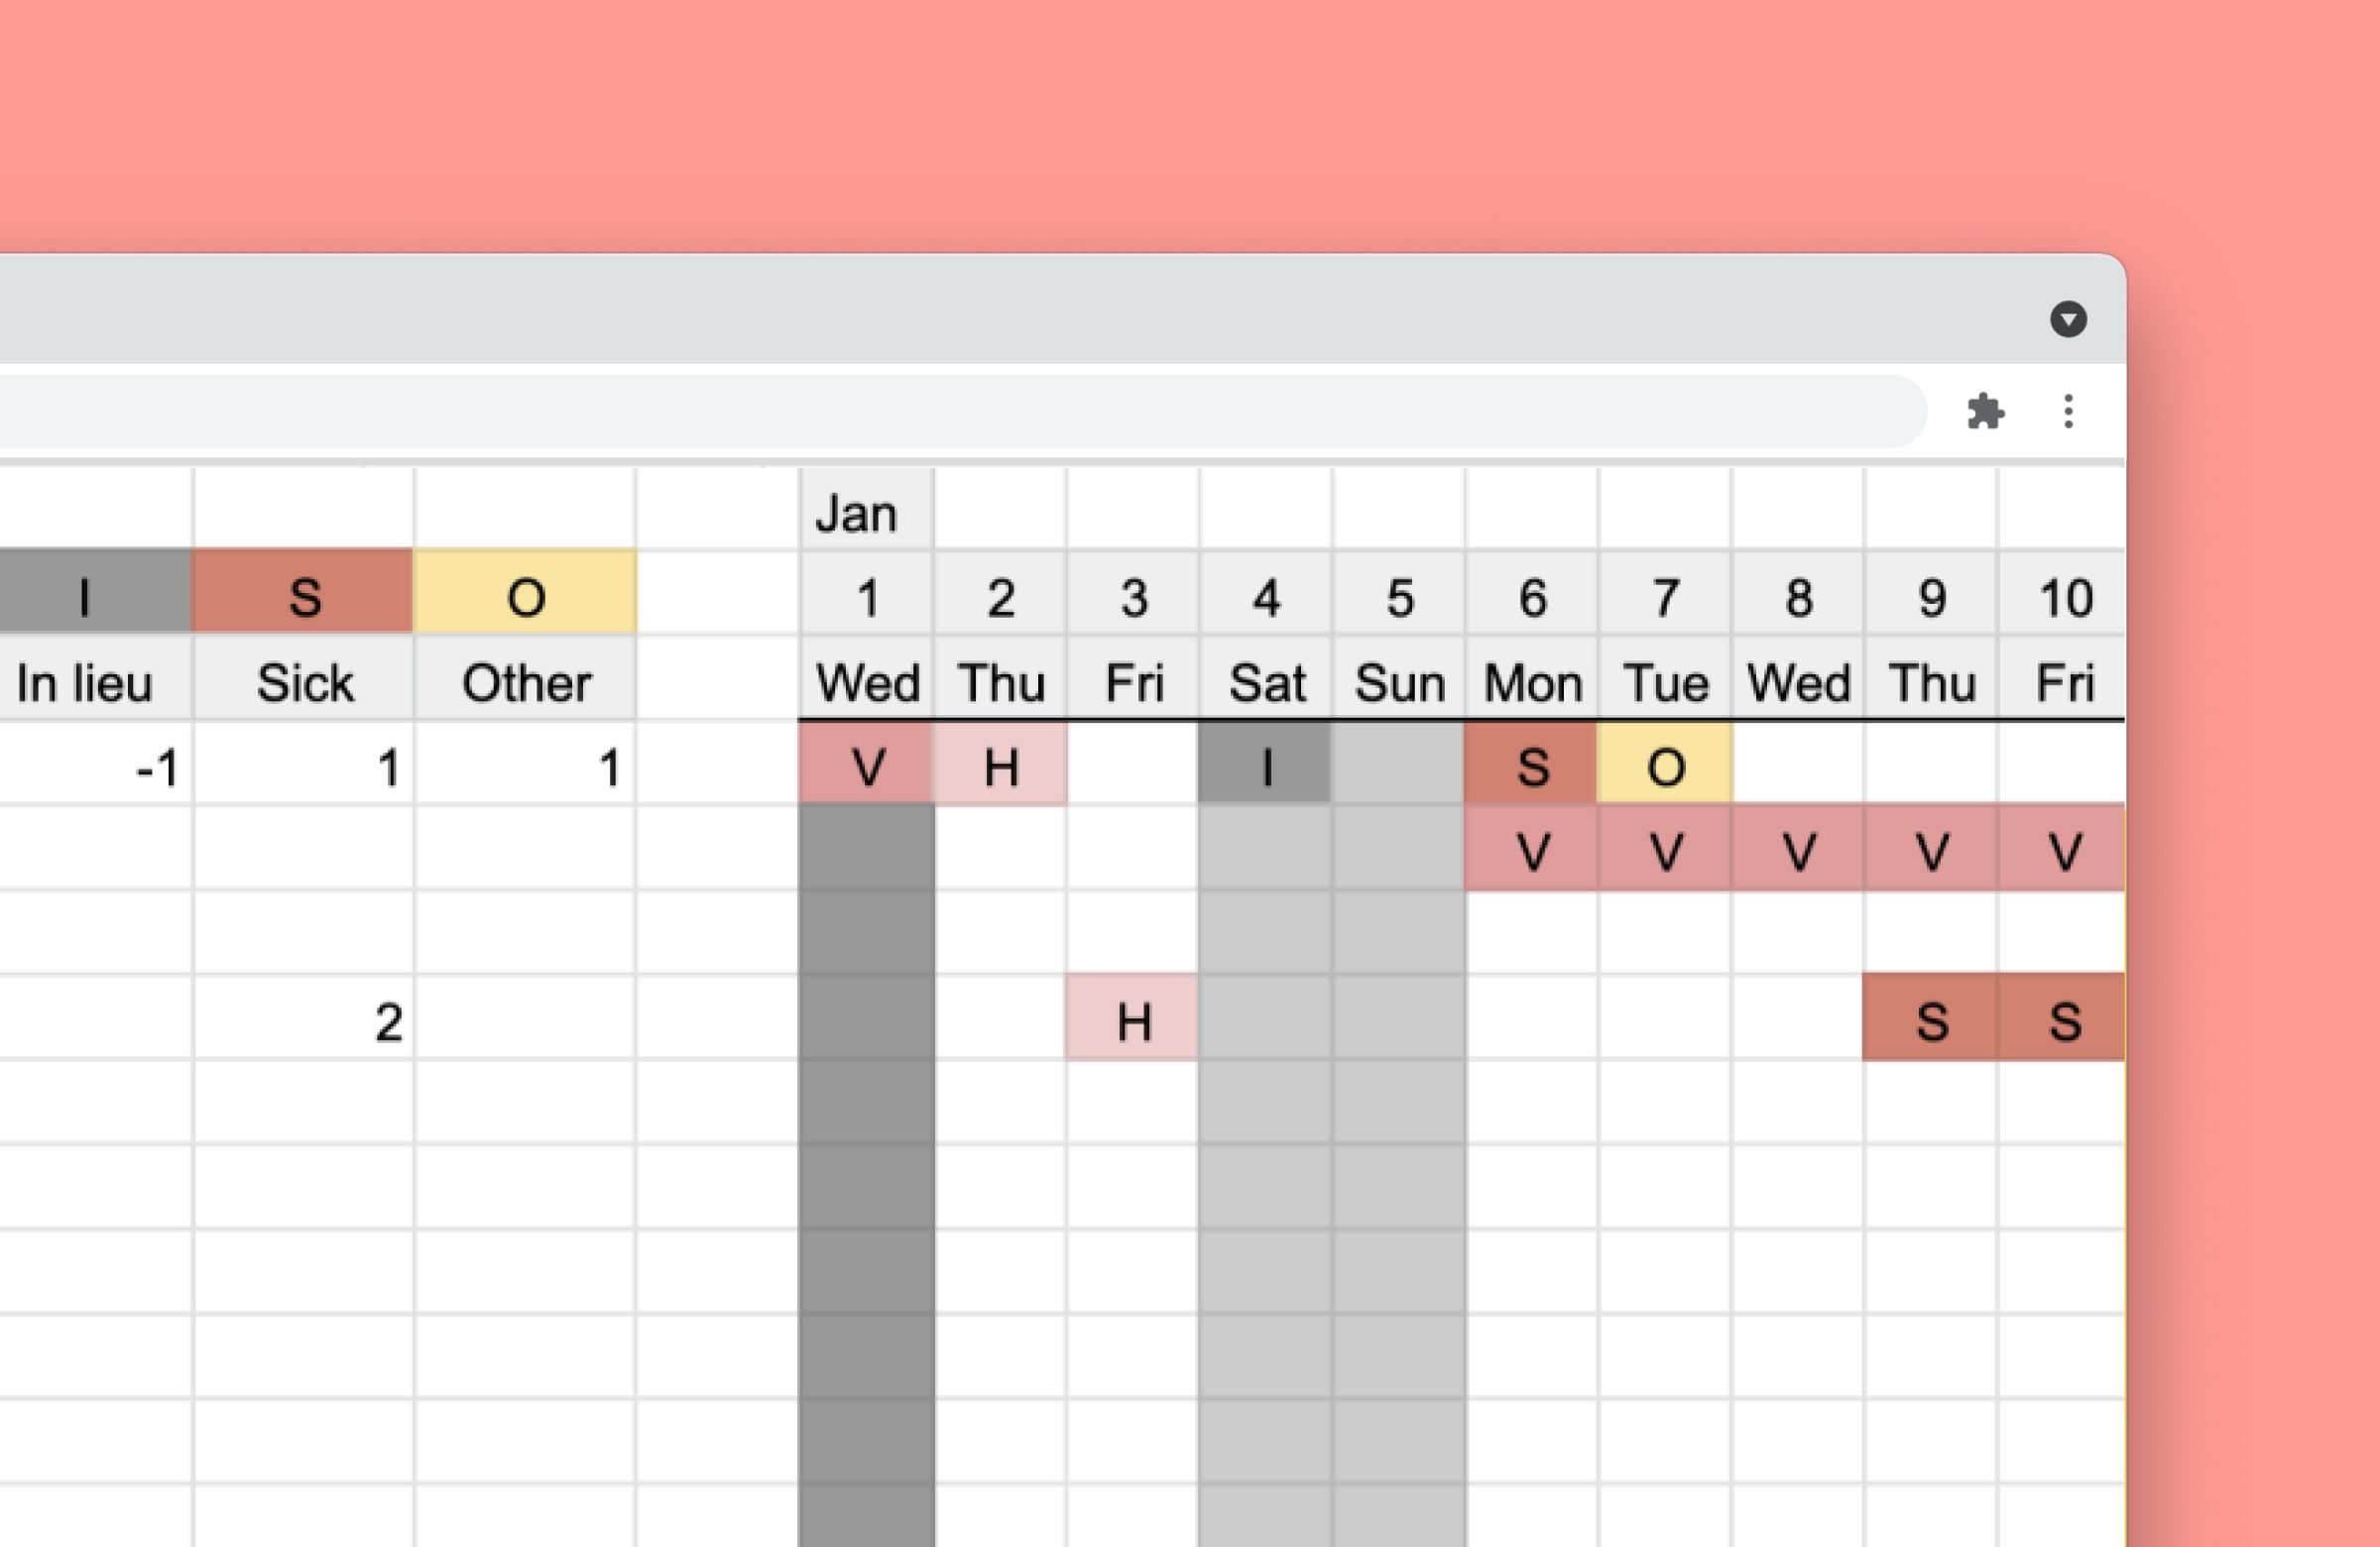 Simple free vacation tracker for 2020